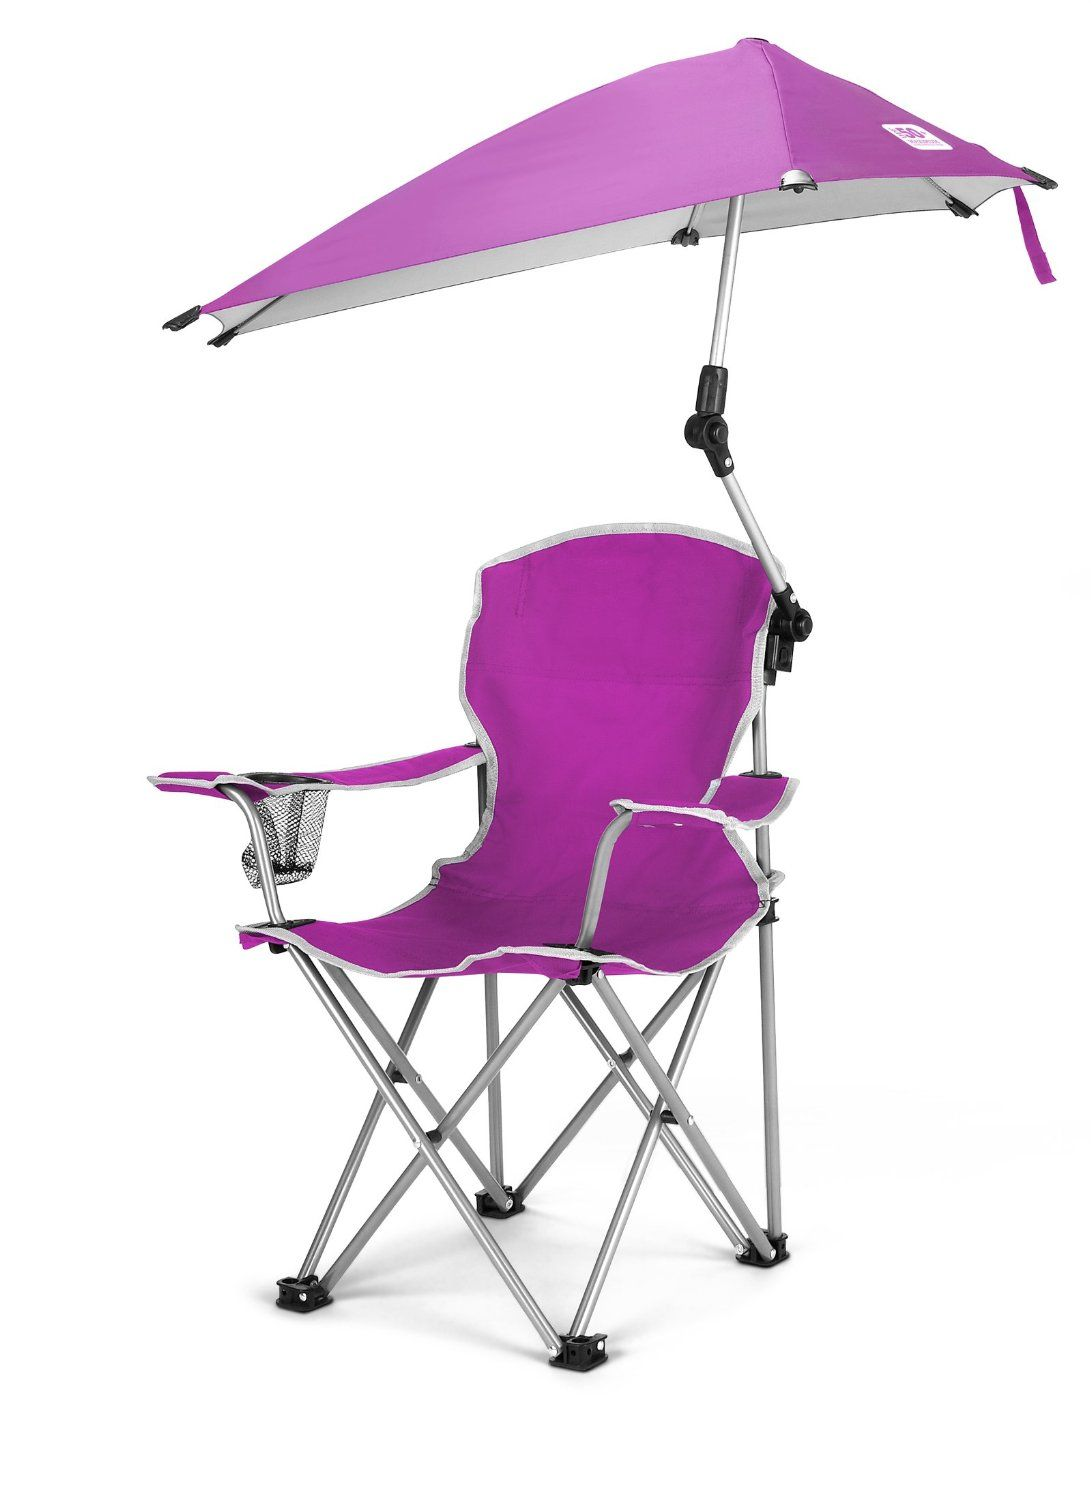 Chair With Umbrella Toddler Camping Chair With Umbrella 360 Degree Sun And Wind